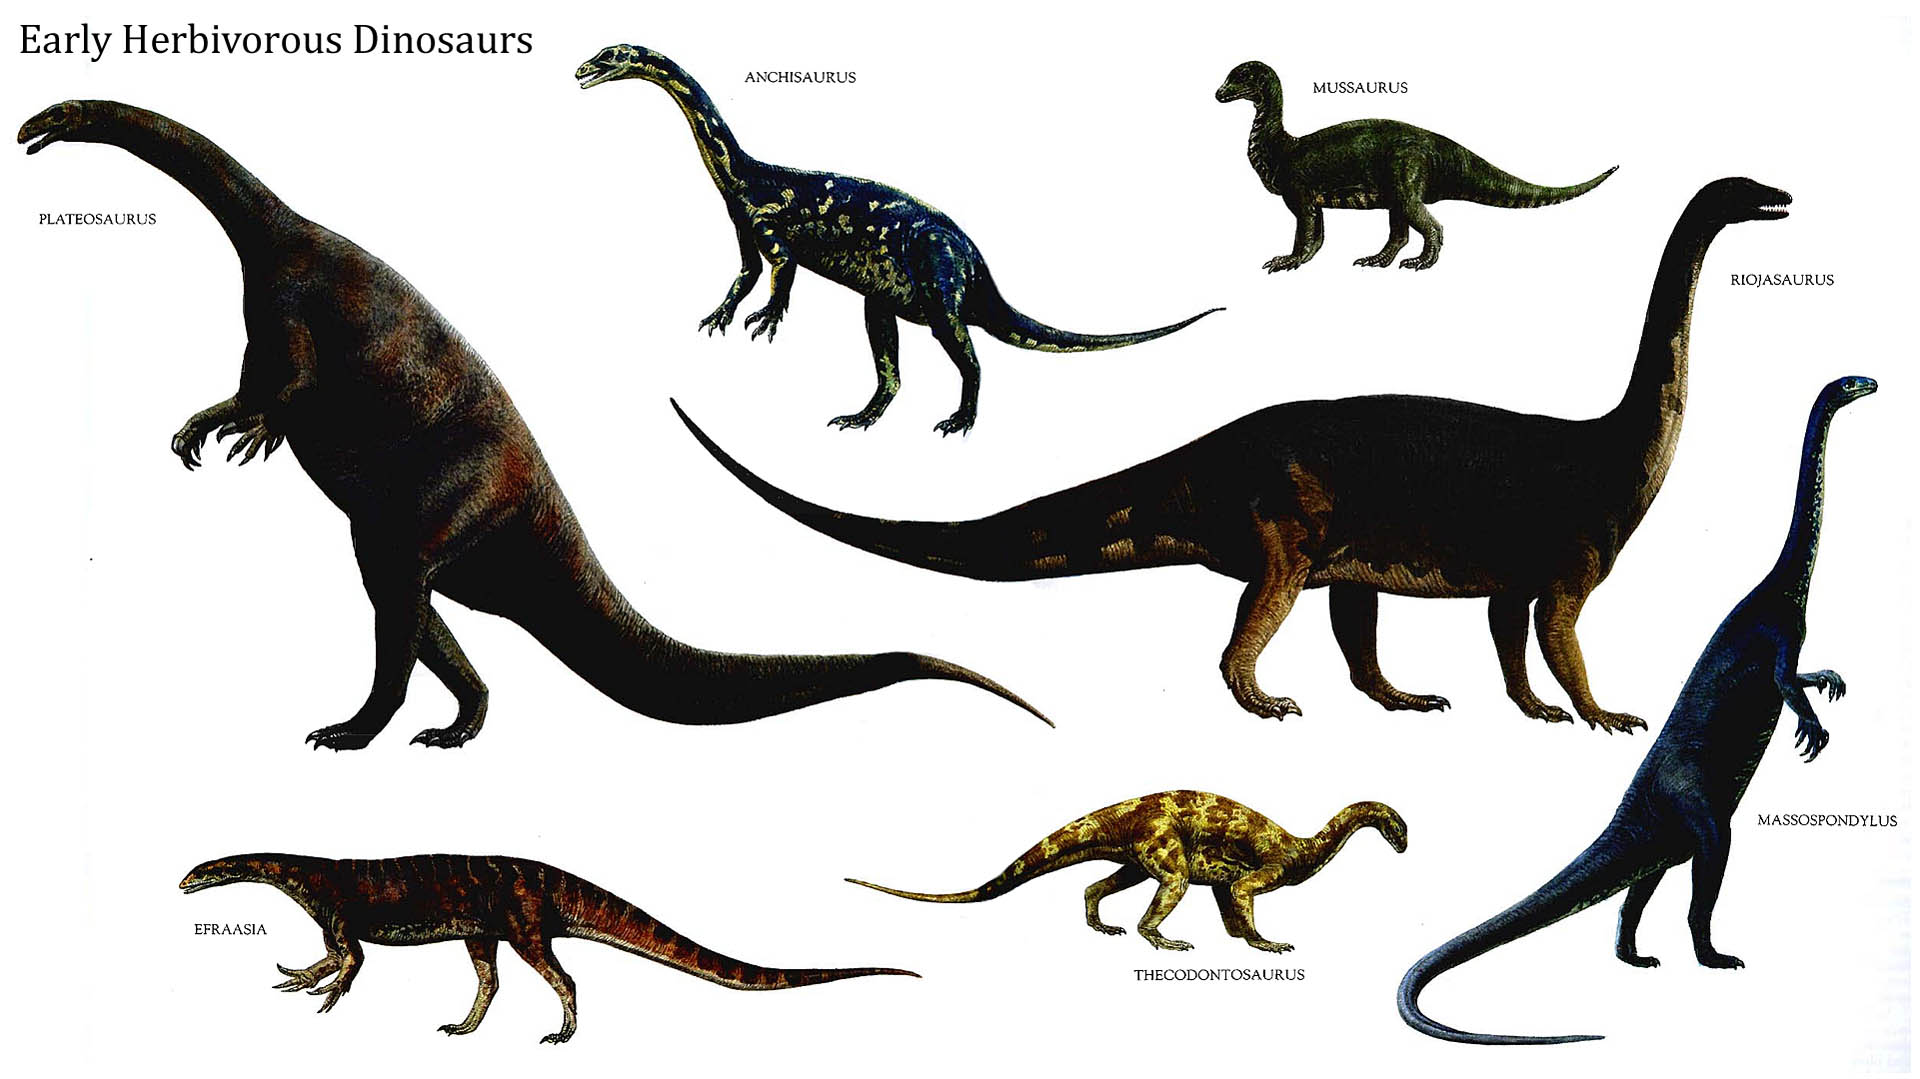 Early Herbivorous Dinosaurs